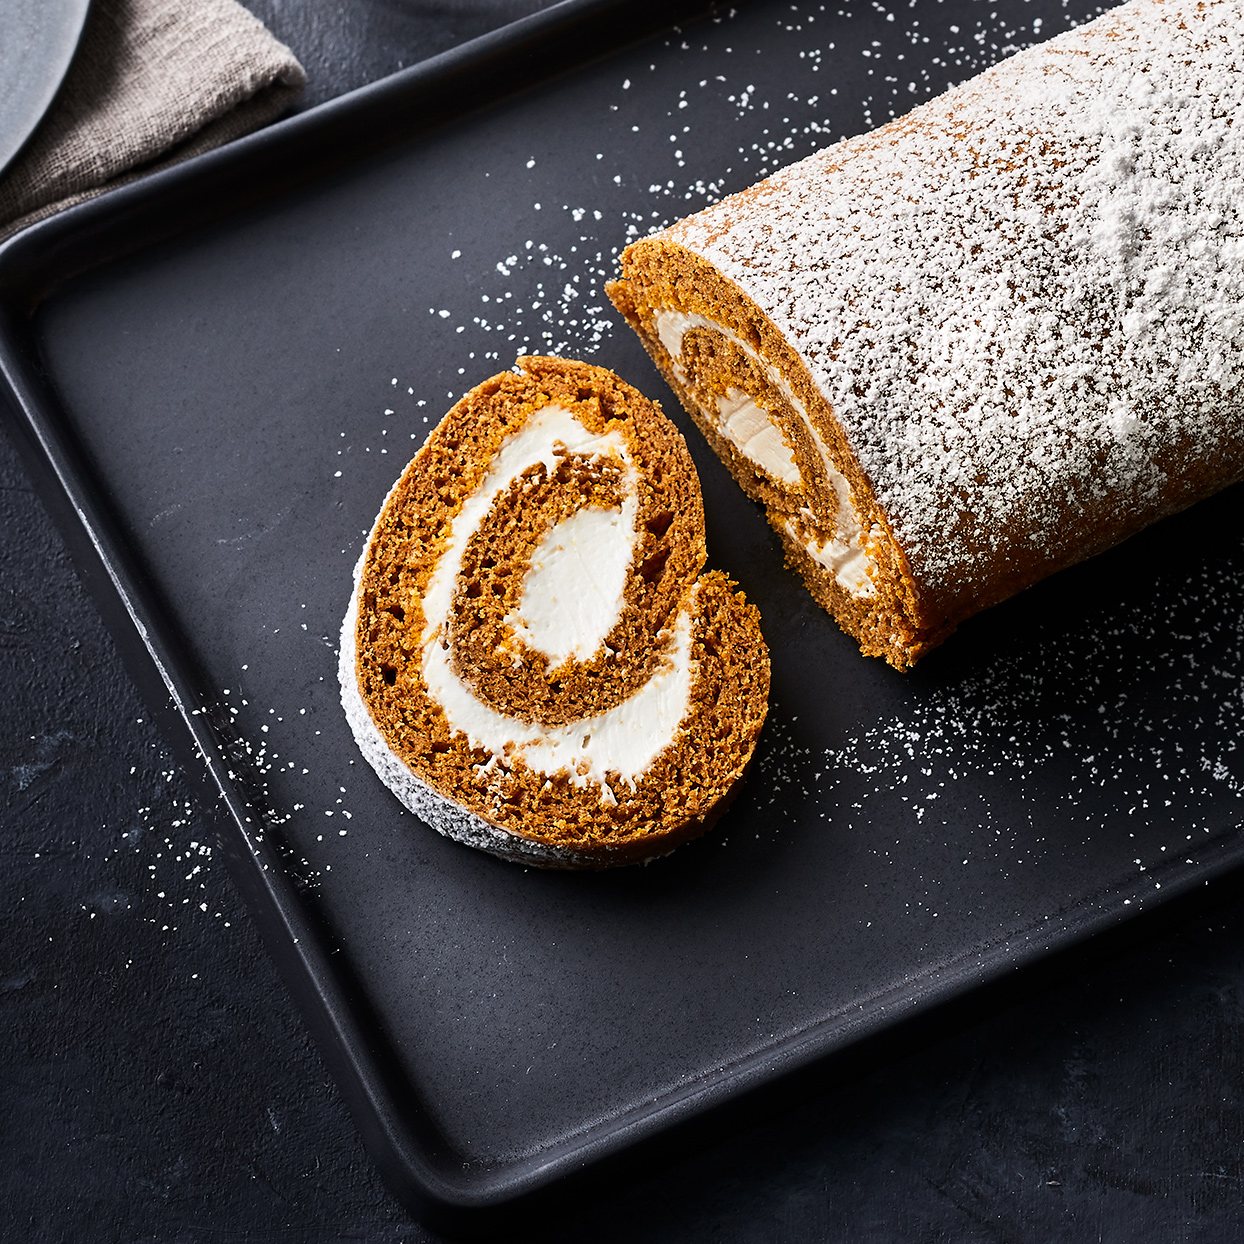 Deliciously warm spiced cake layers are rolled together with slightly tangy cream cheese frosting. This pumpkin jelly roll tastes decadent, but each serving is under 200 calories and has less than 20 grams of sugar. Don't be intimidated by this jelly roll—so long as you work quickly while the cake is warm, it's hard to mess it up or crack the cake.